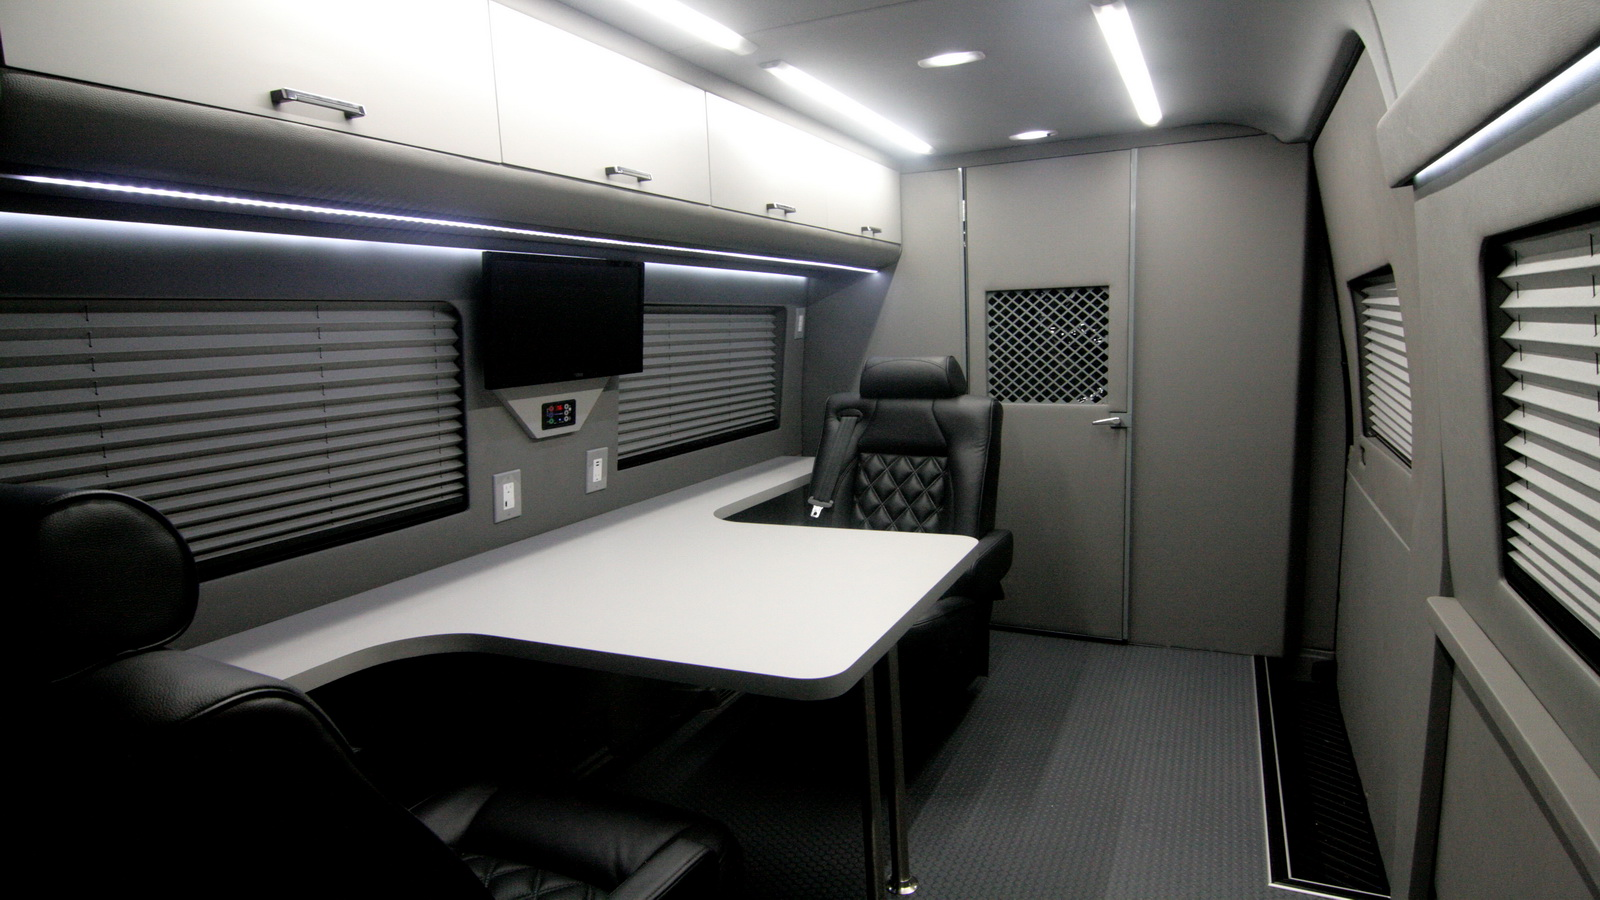 Mobile Office Conversion Vans | HQ Custom Design